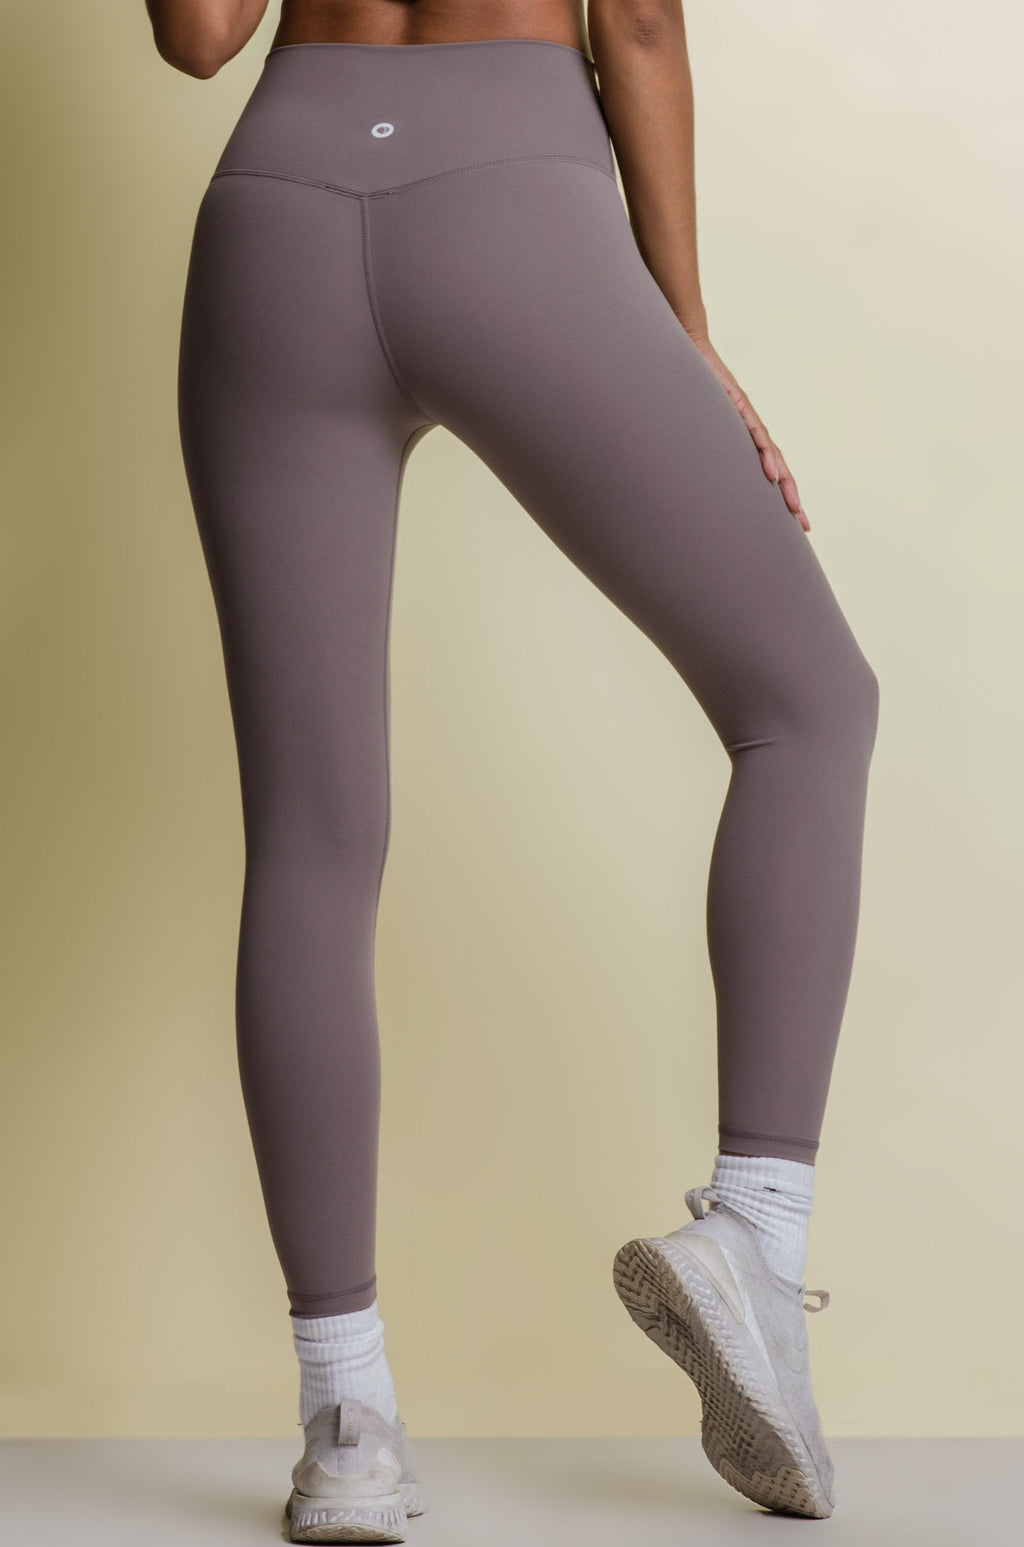 EVERYDAY LEGGINGS - TAUPE GREY